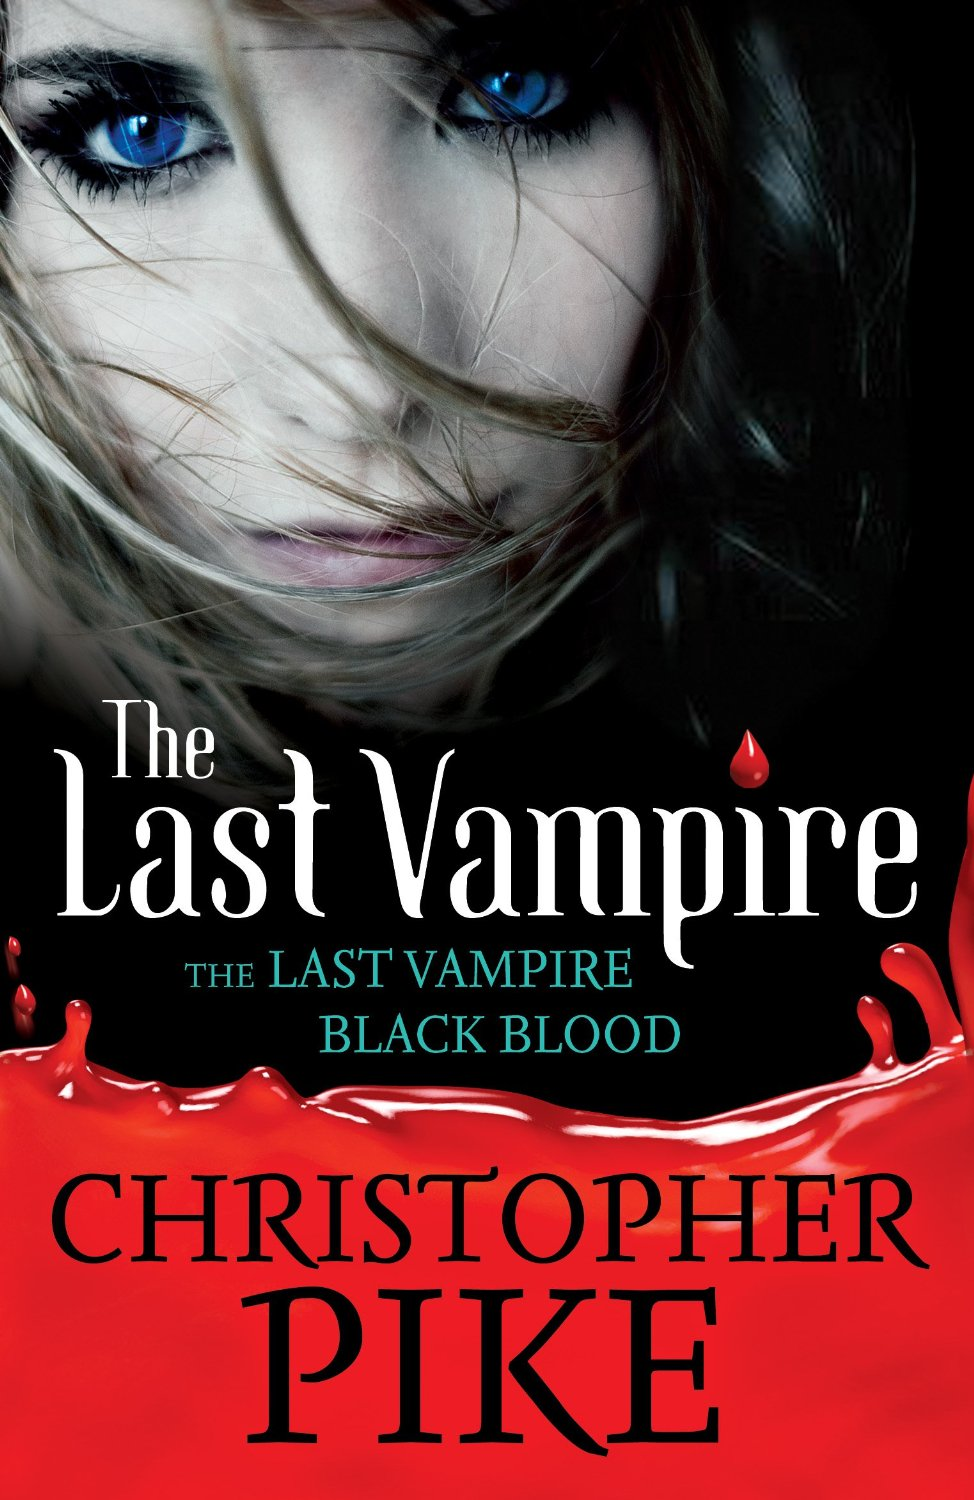 Related Topics:The Last Vampire